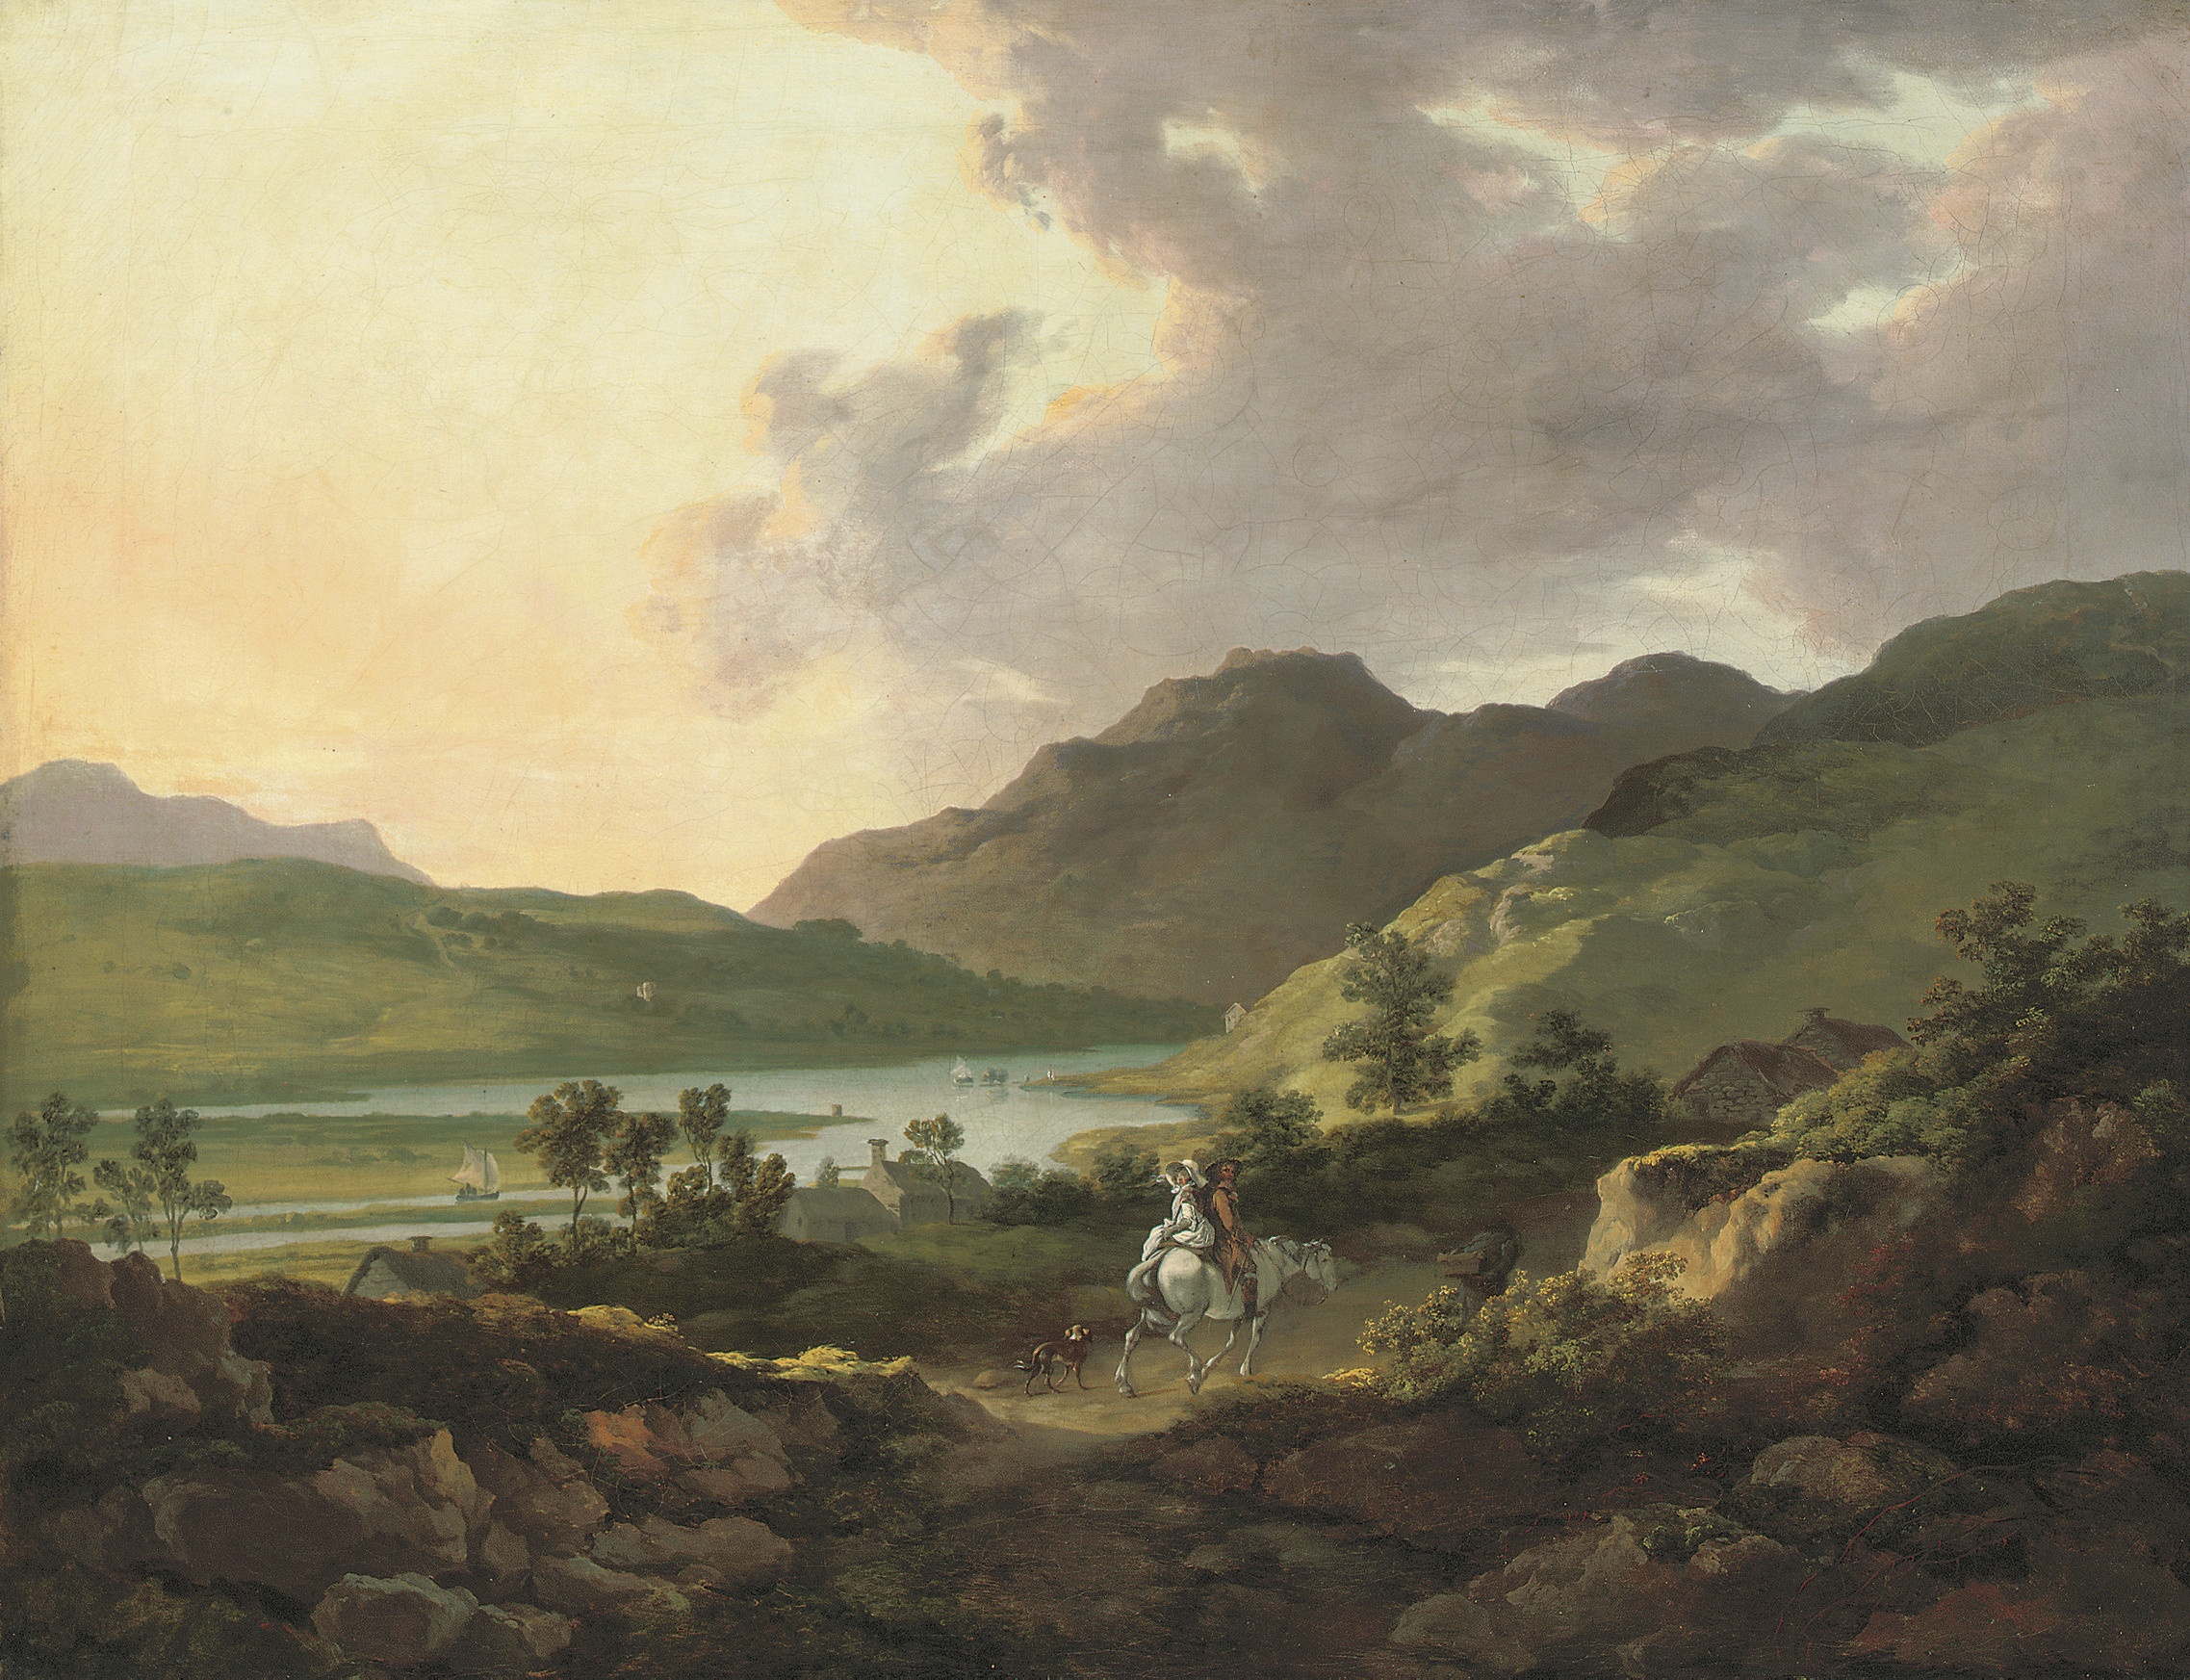 A mountainous lake landscape with travellers on a path in the foreground and boats on the lake beyond